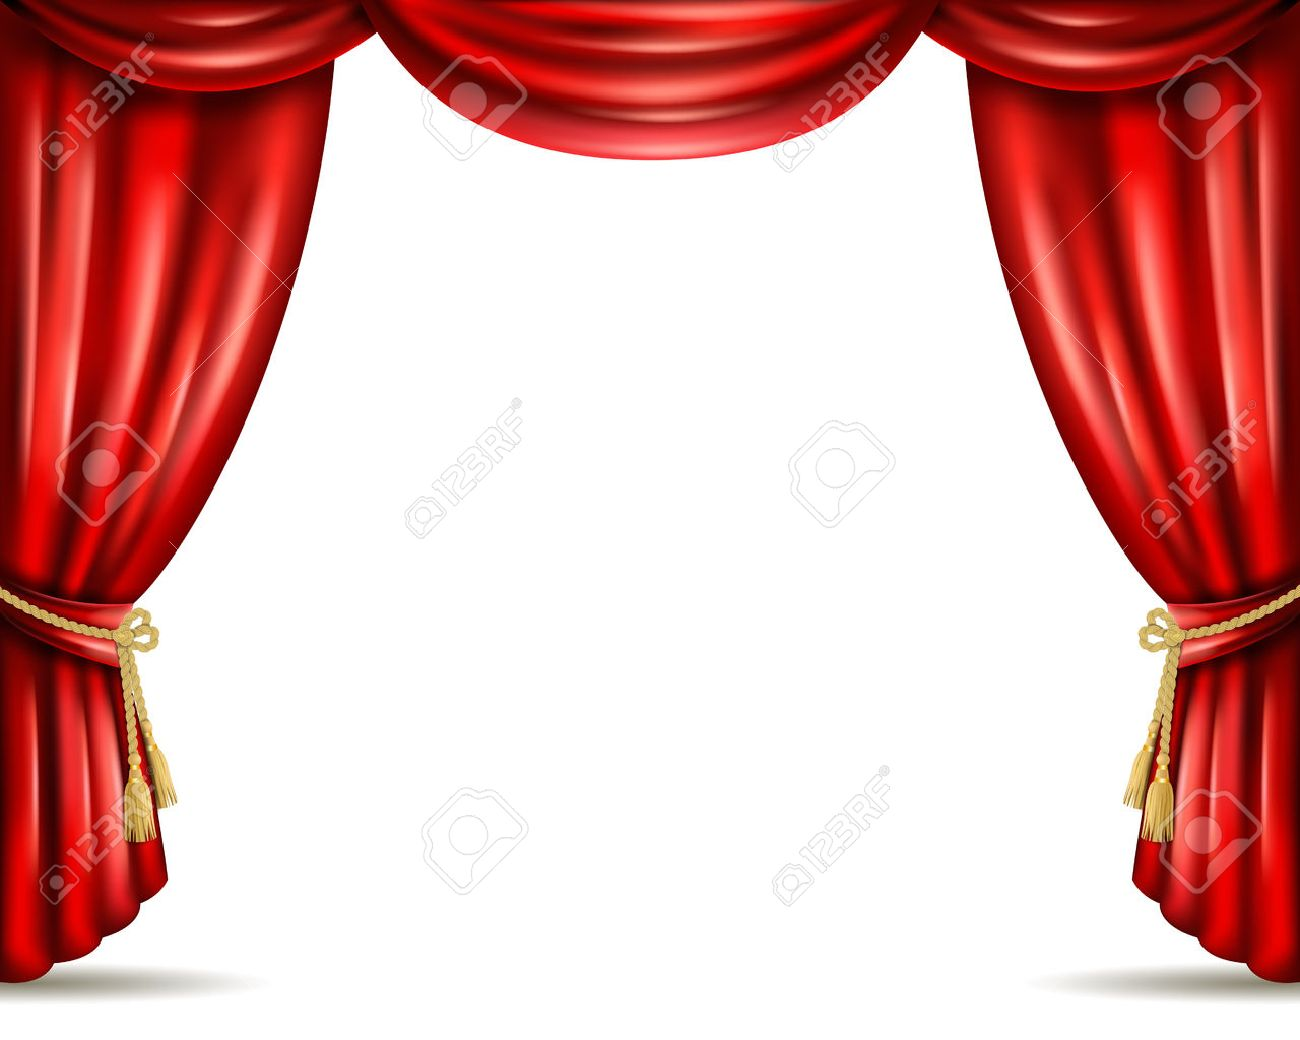 Open theater drapes or stage curtains royalty free stock image image - Theater Drapes Opera House Theater Front Stage Iconic Open Red Curtain Drapery From Heavy Velour